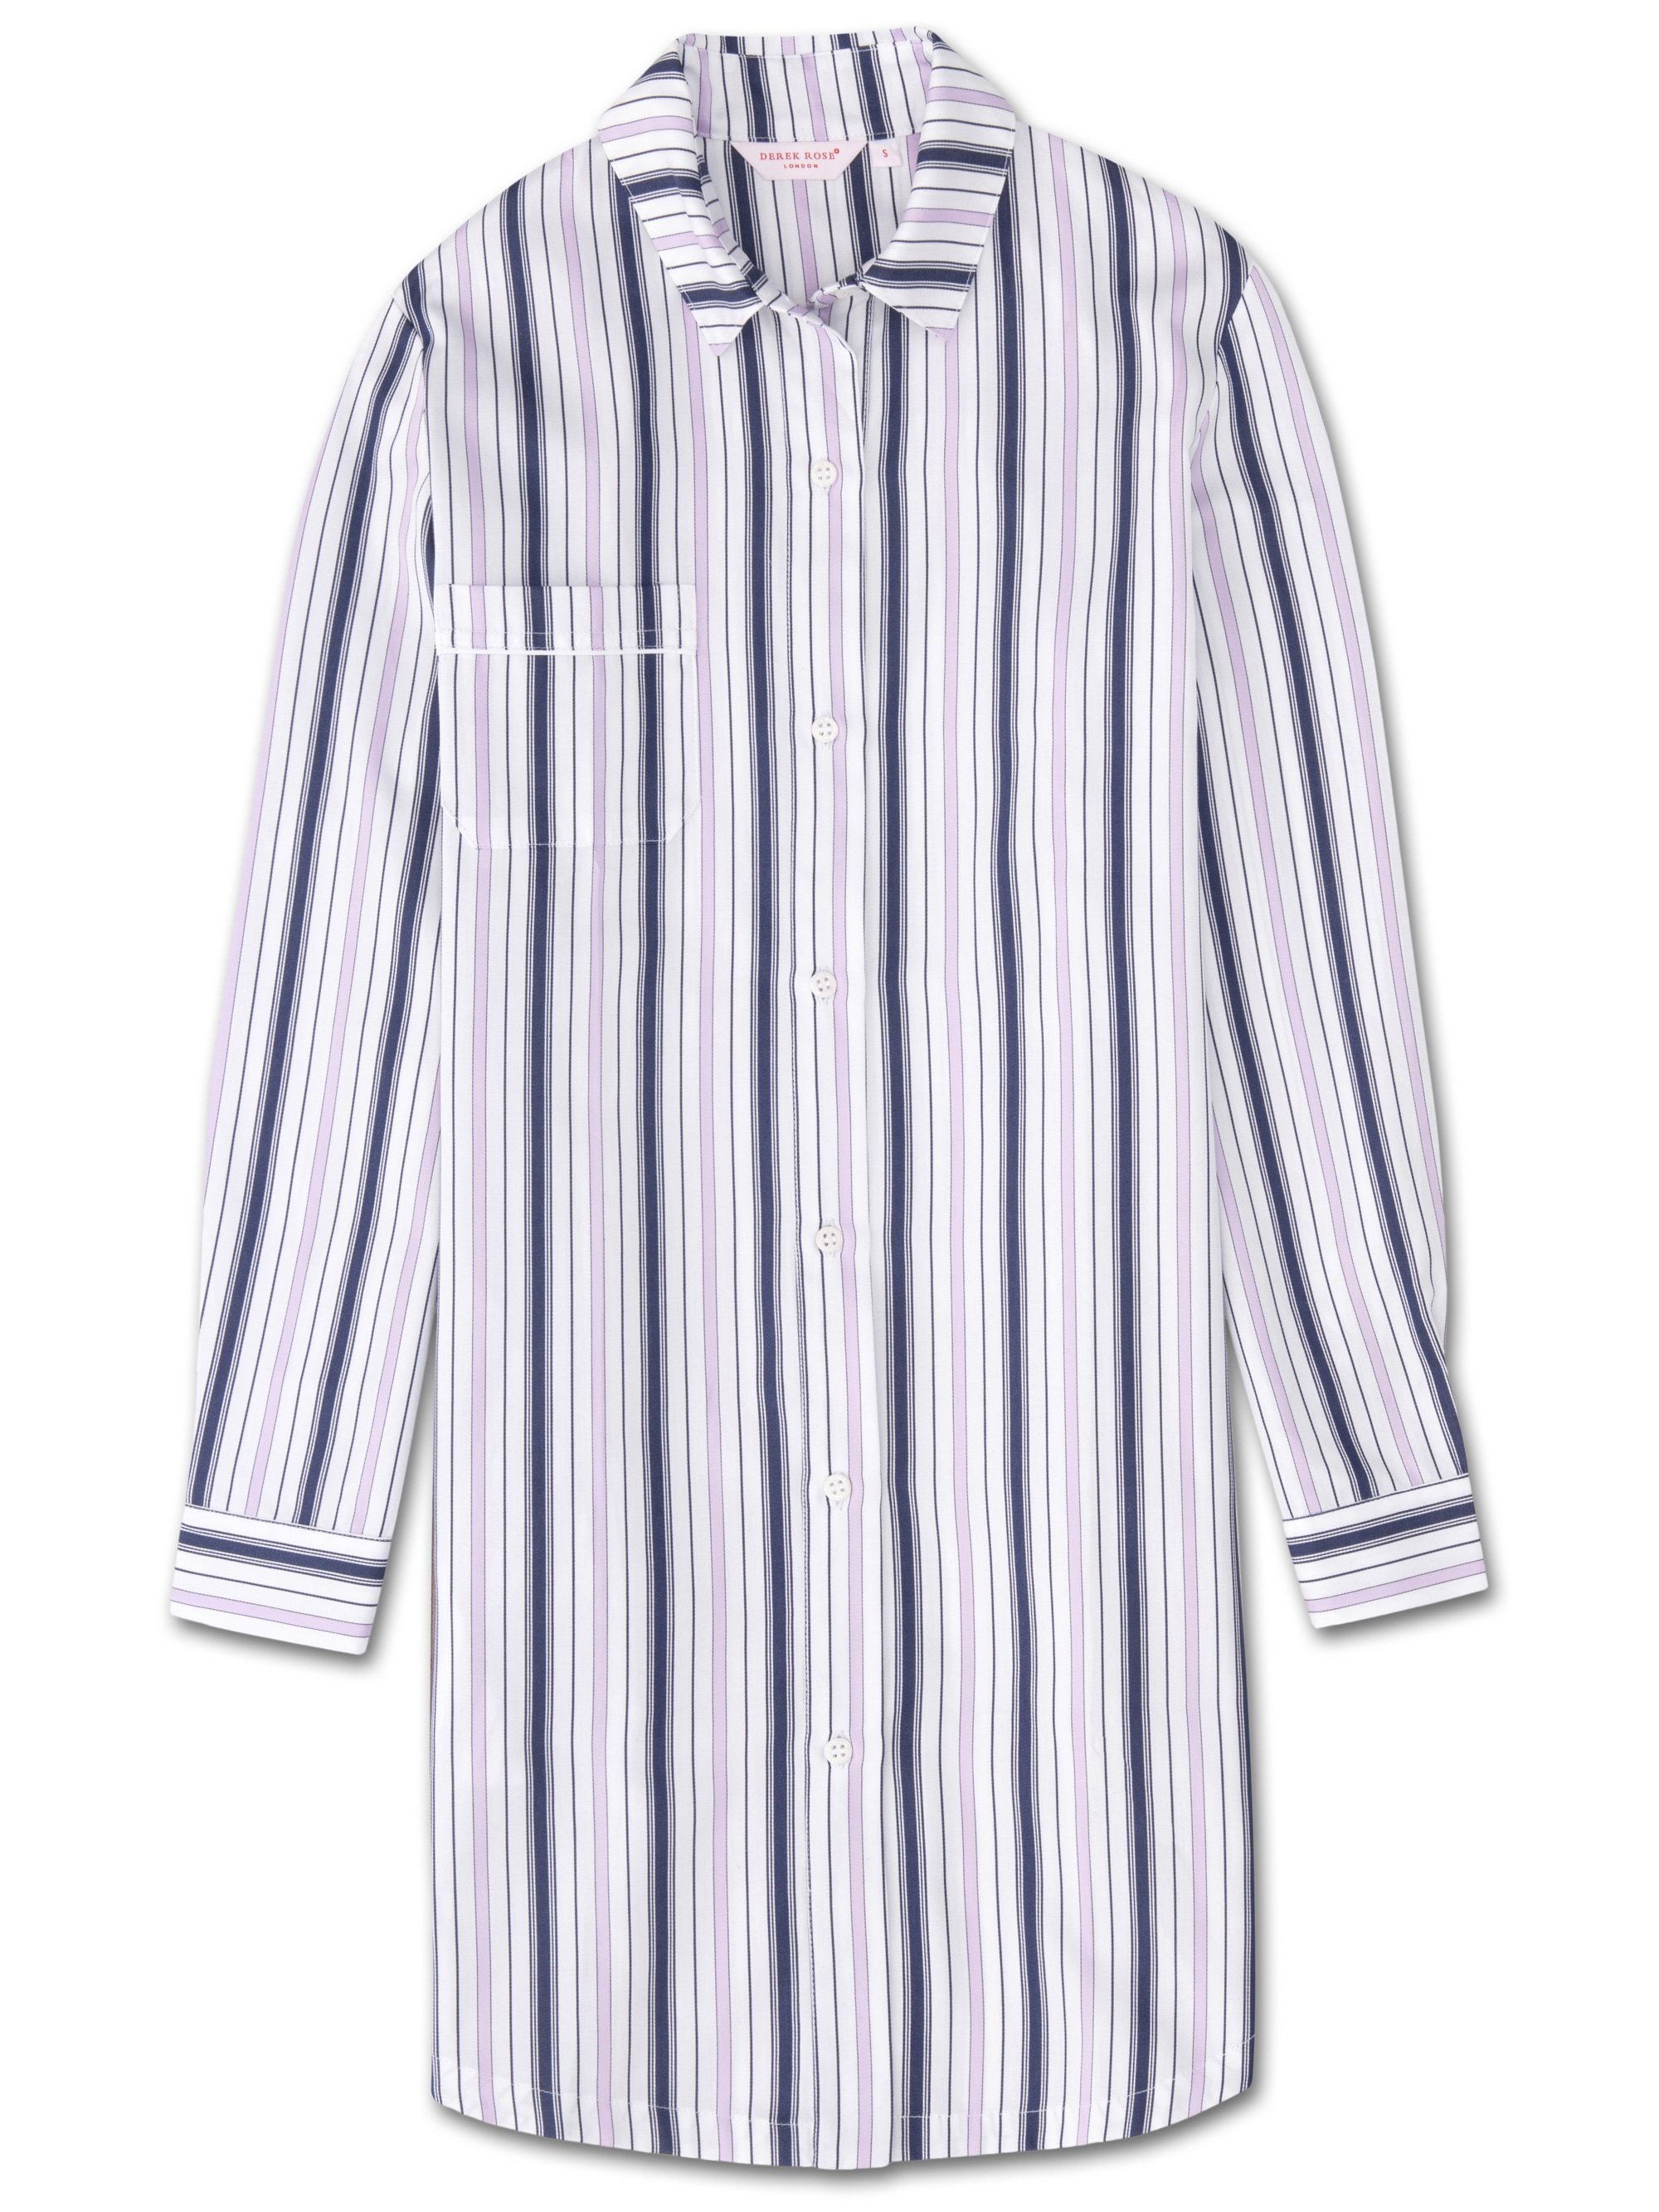 Women's Nightshirt Milly 7 Cotton Full Satin Stripe White